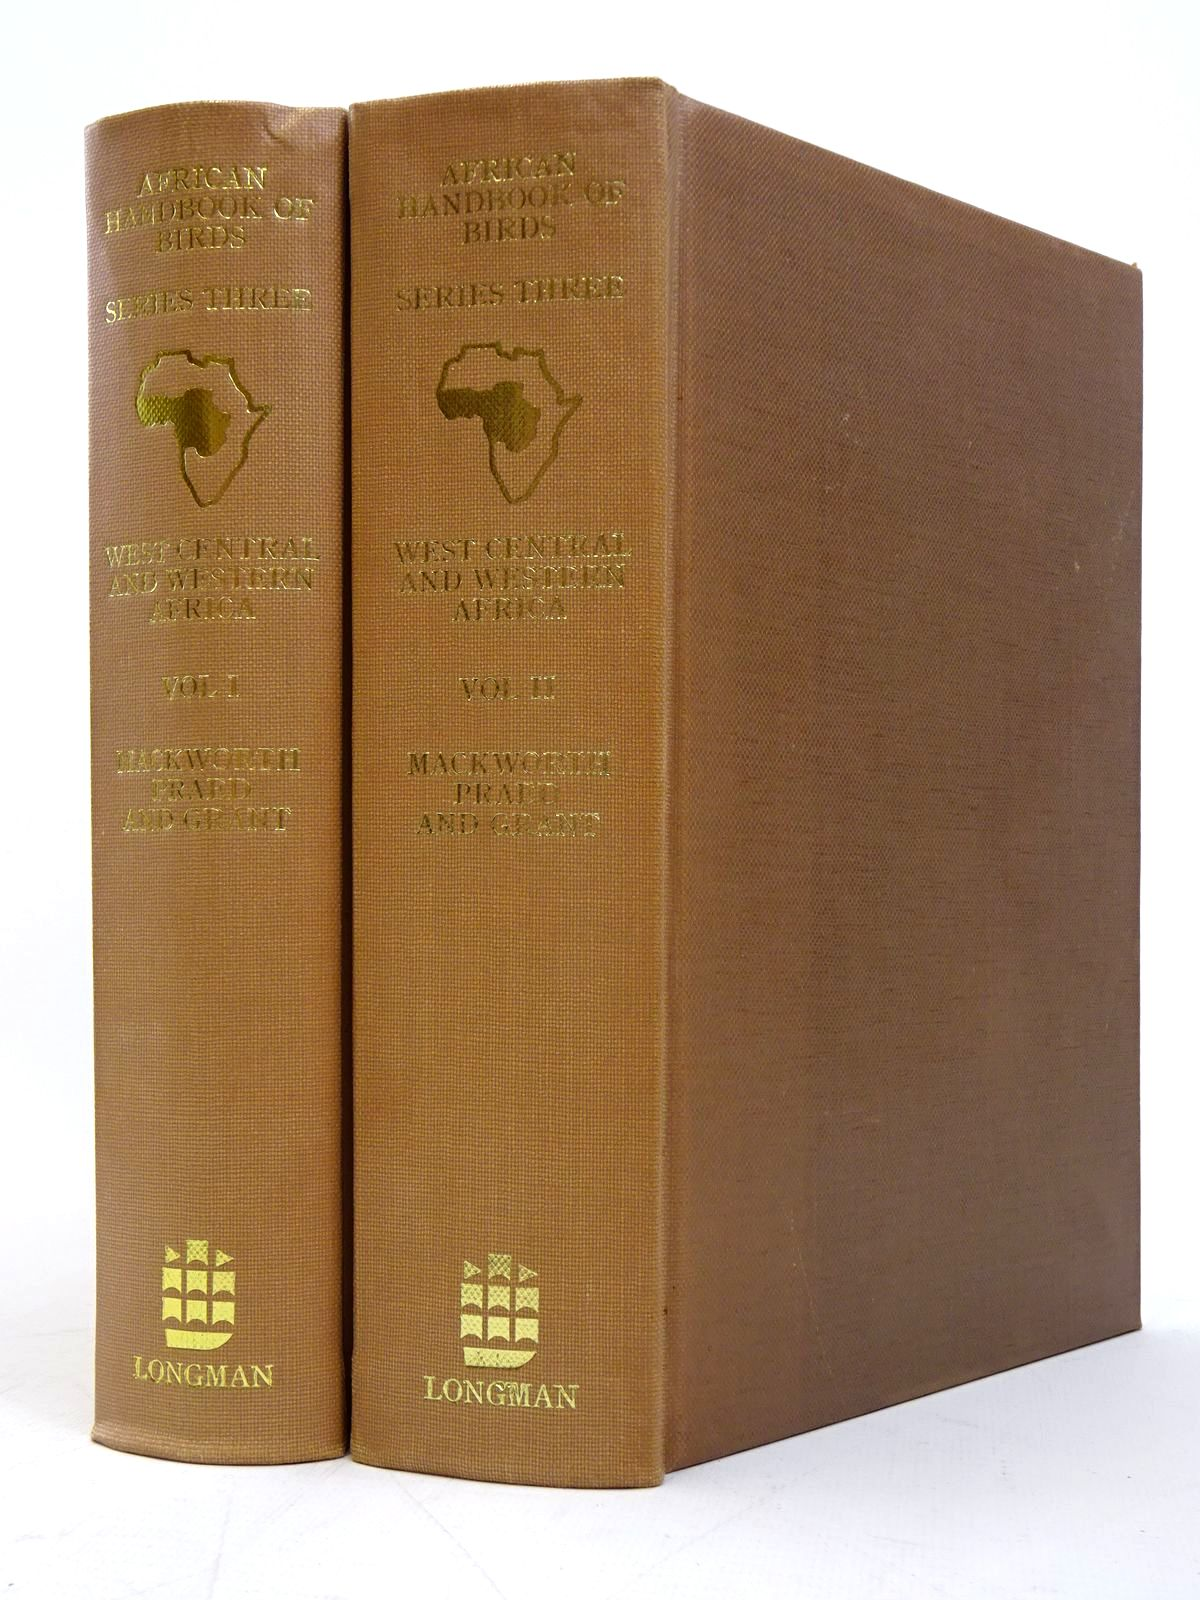 Photo of BIRDS OF WEST CENTRAL AND WESTERN AFRICA (AFRICAN HANDBOOK OF BIRDS SERIES THREE) written by Mackworth-Praed, C.W.<br />Grant, C.H.B. published by Longman (STOCK CODE: 1817596)  for sale by Stella & Rose's Books